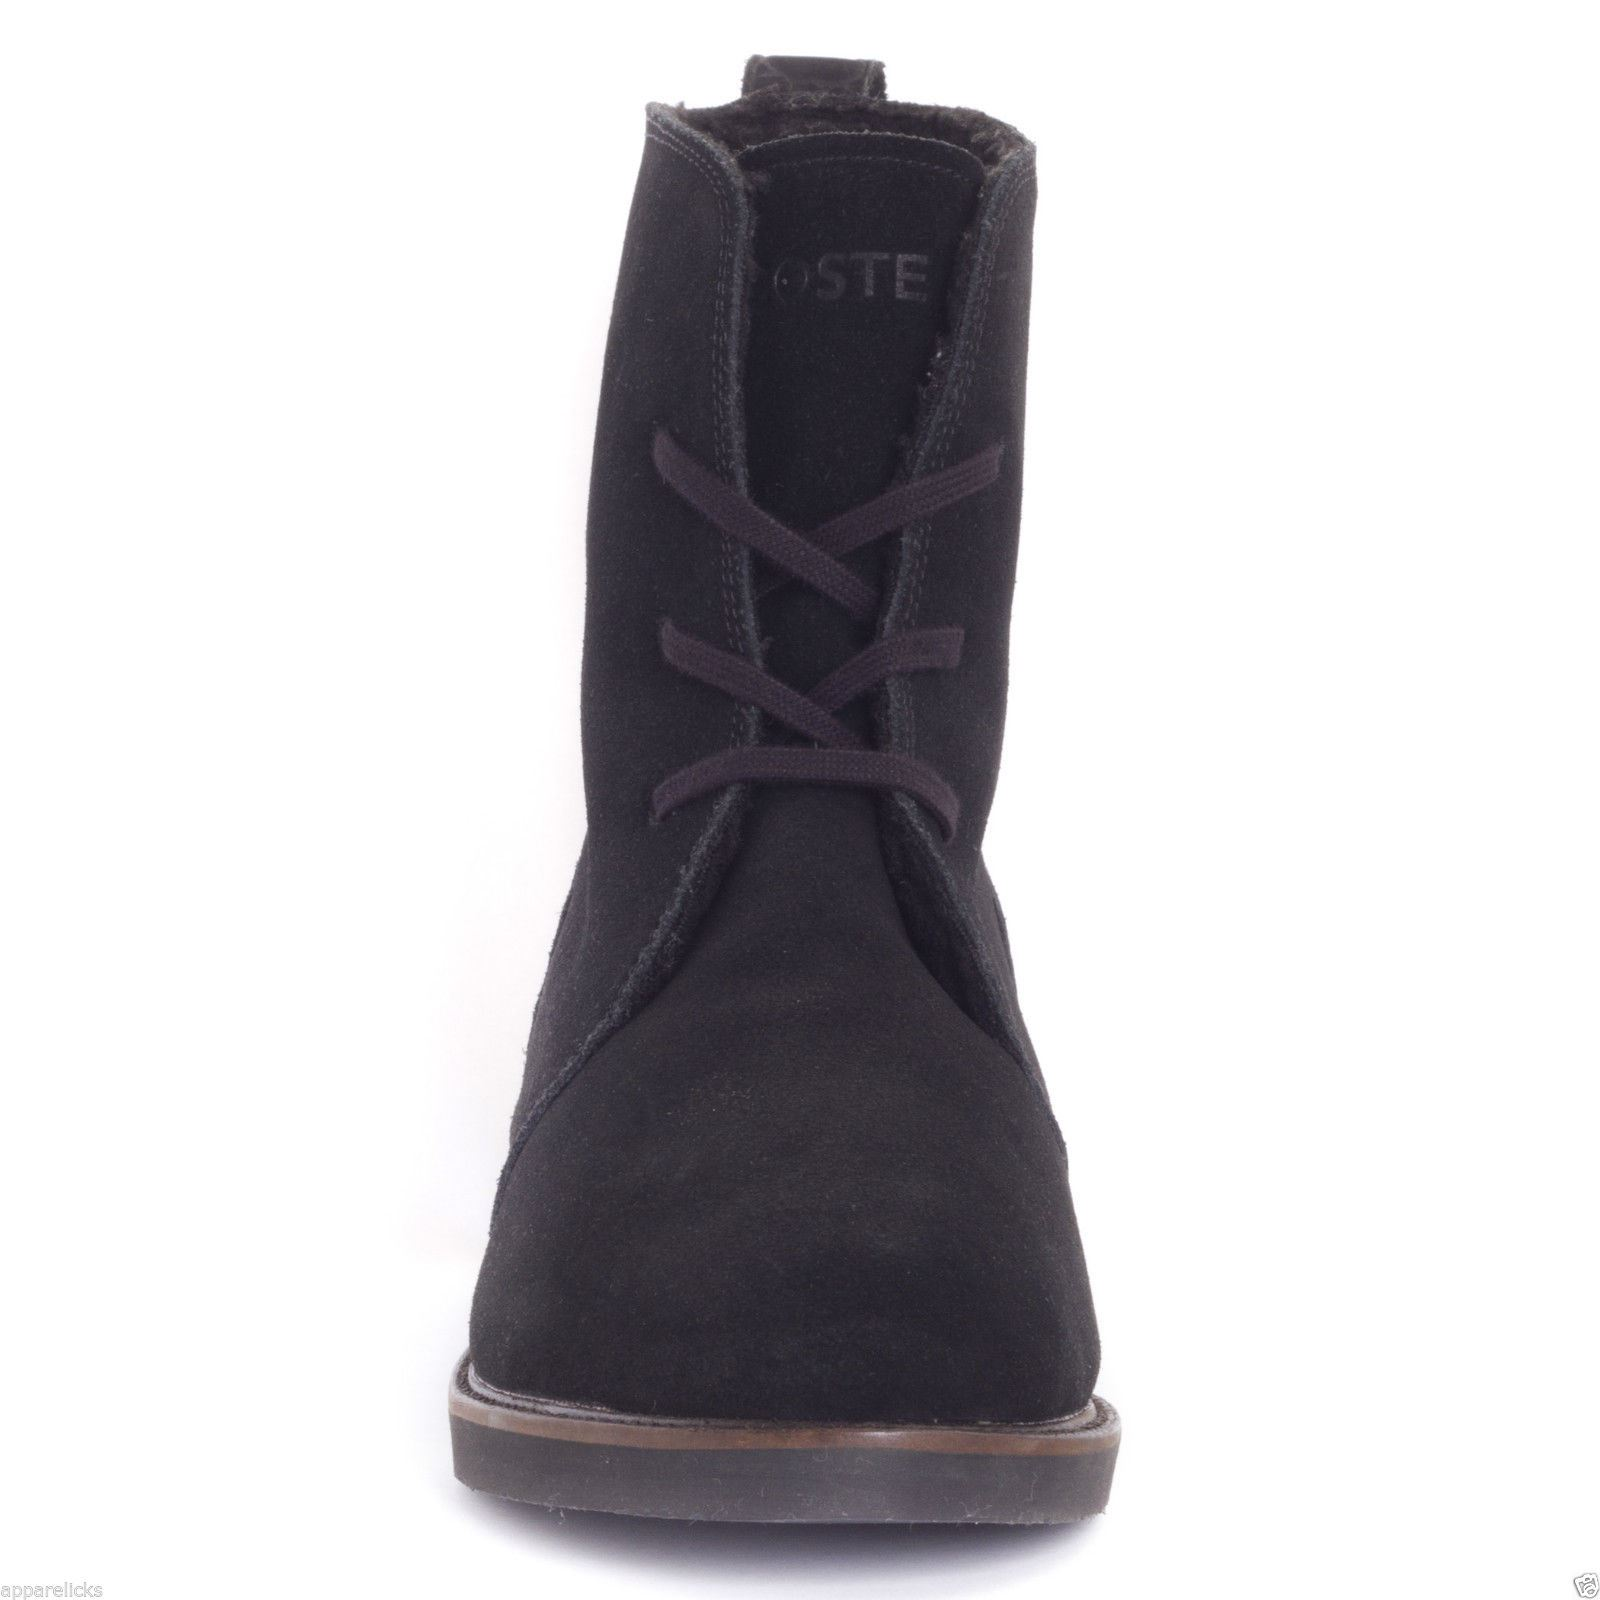 a65ed11309a3f Awesome Details About Lacoste Zerubia 2 Ladies Snow Boots Black